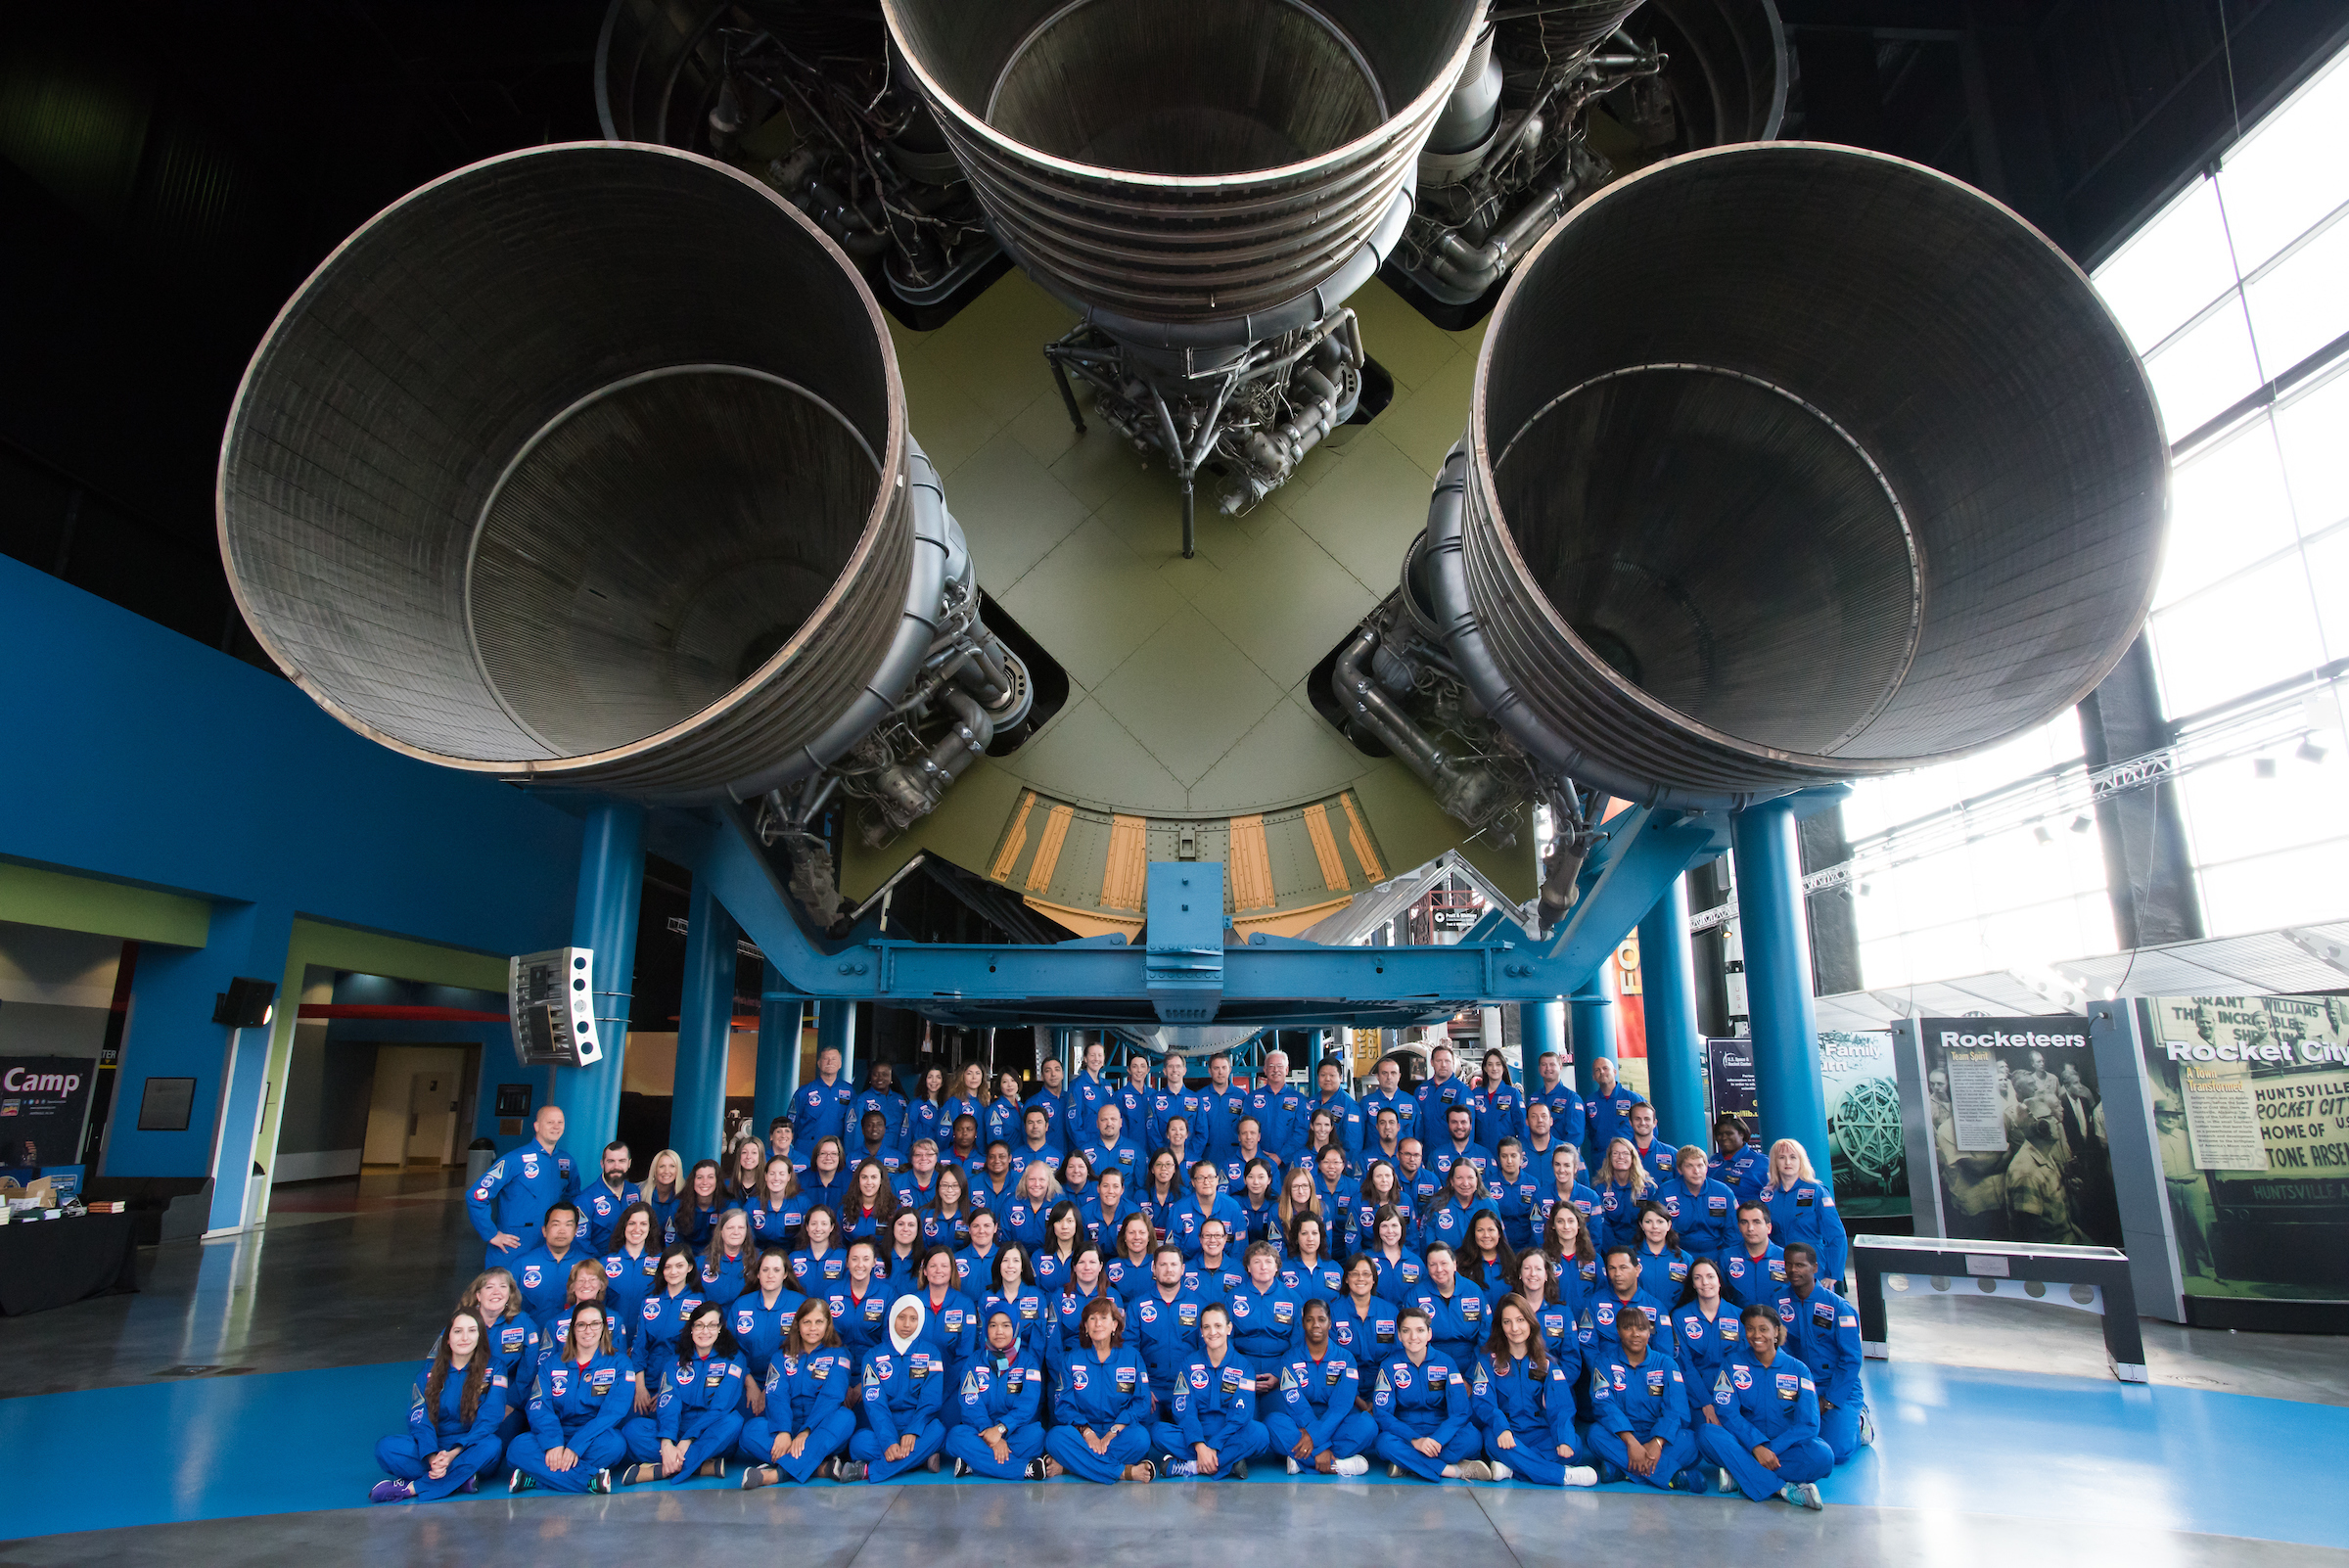 More than 200 educators who were part of the Honeywell Educators at Space Academy program in 2016 pose in front of the Saturn V rocket at the U.S. Space and Rocket Center in Huntsville, Ala.